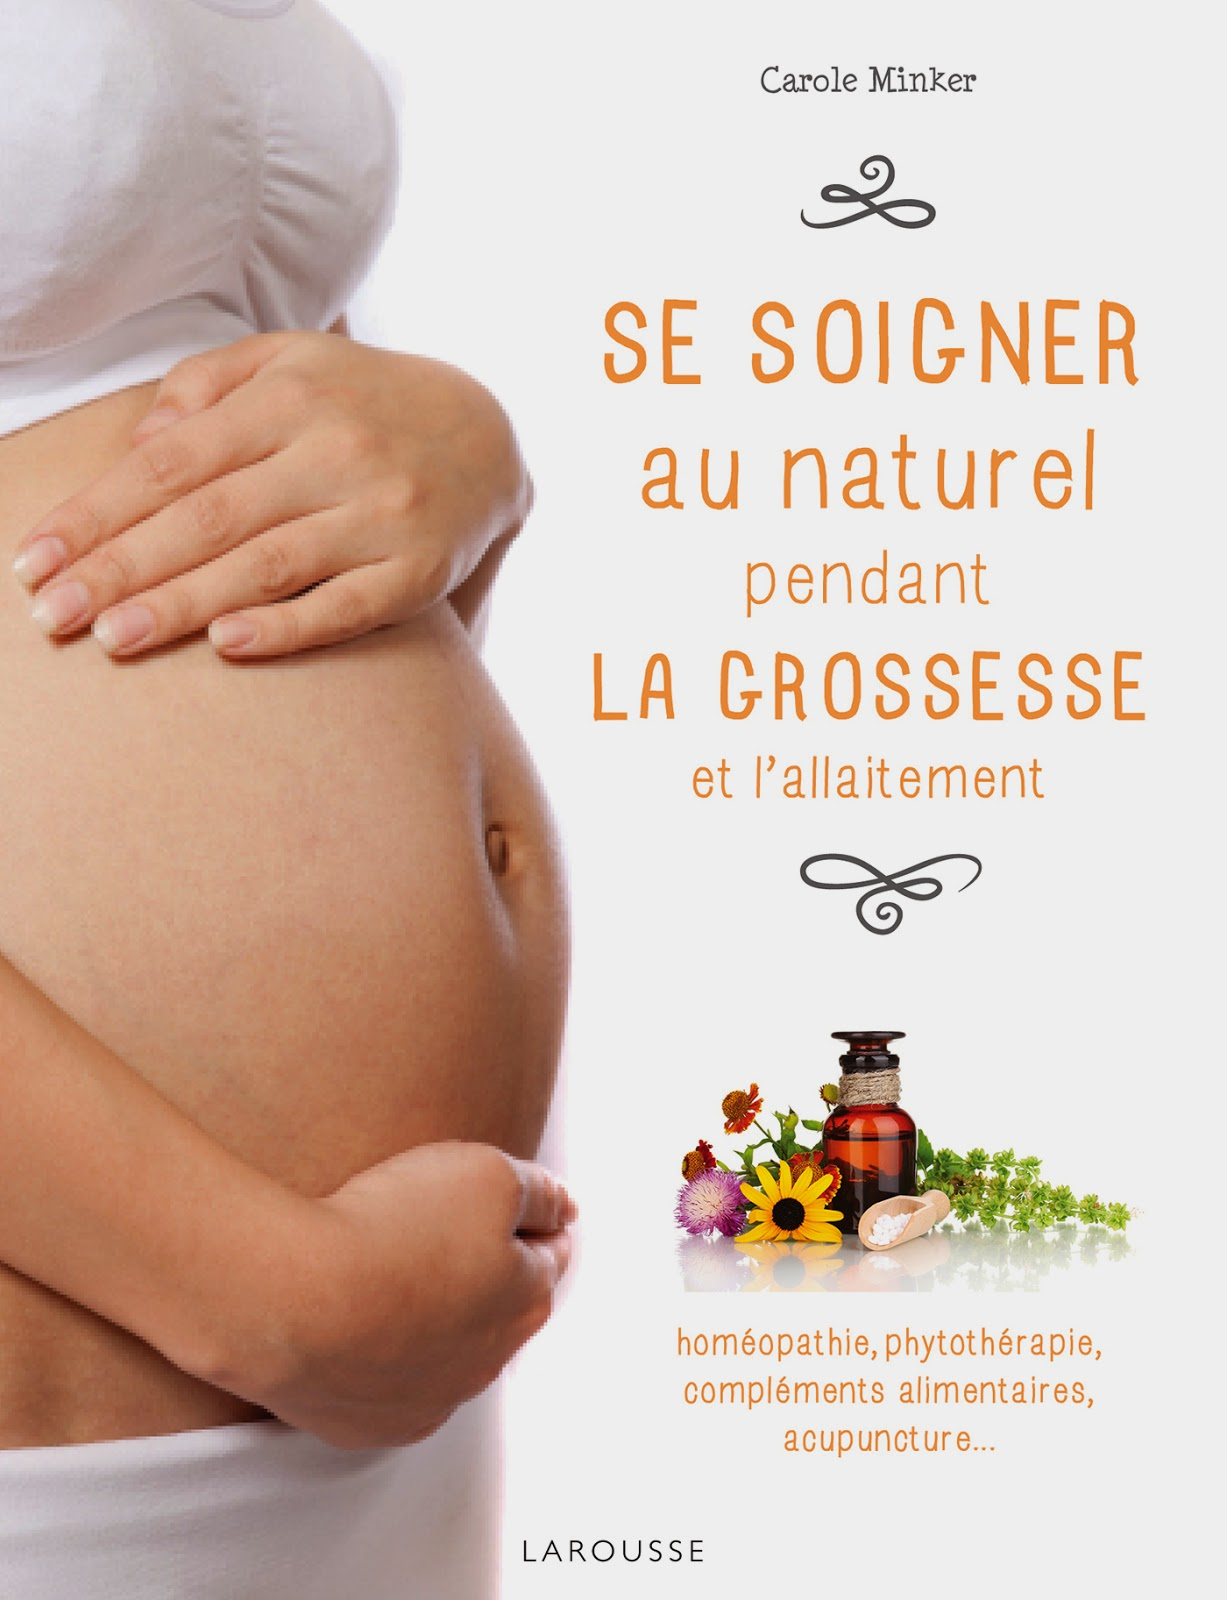 http://www.amazon.fr/soigner-naturel-pendant-grossesse-lallaitement/dp/203590532X/ref=sr_1_3?ie=UTF8&qid=1426696121&sr=8-3&